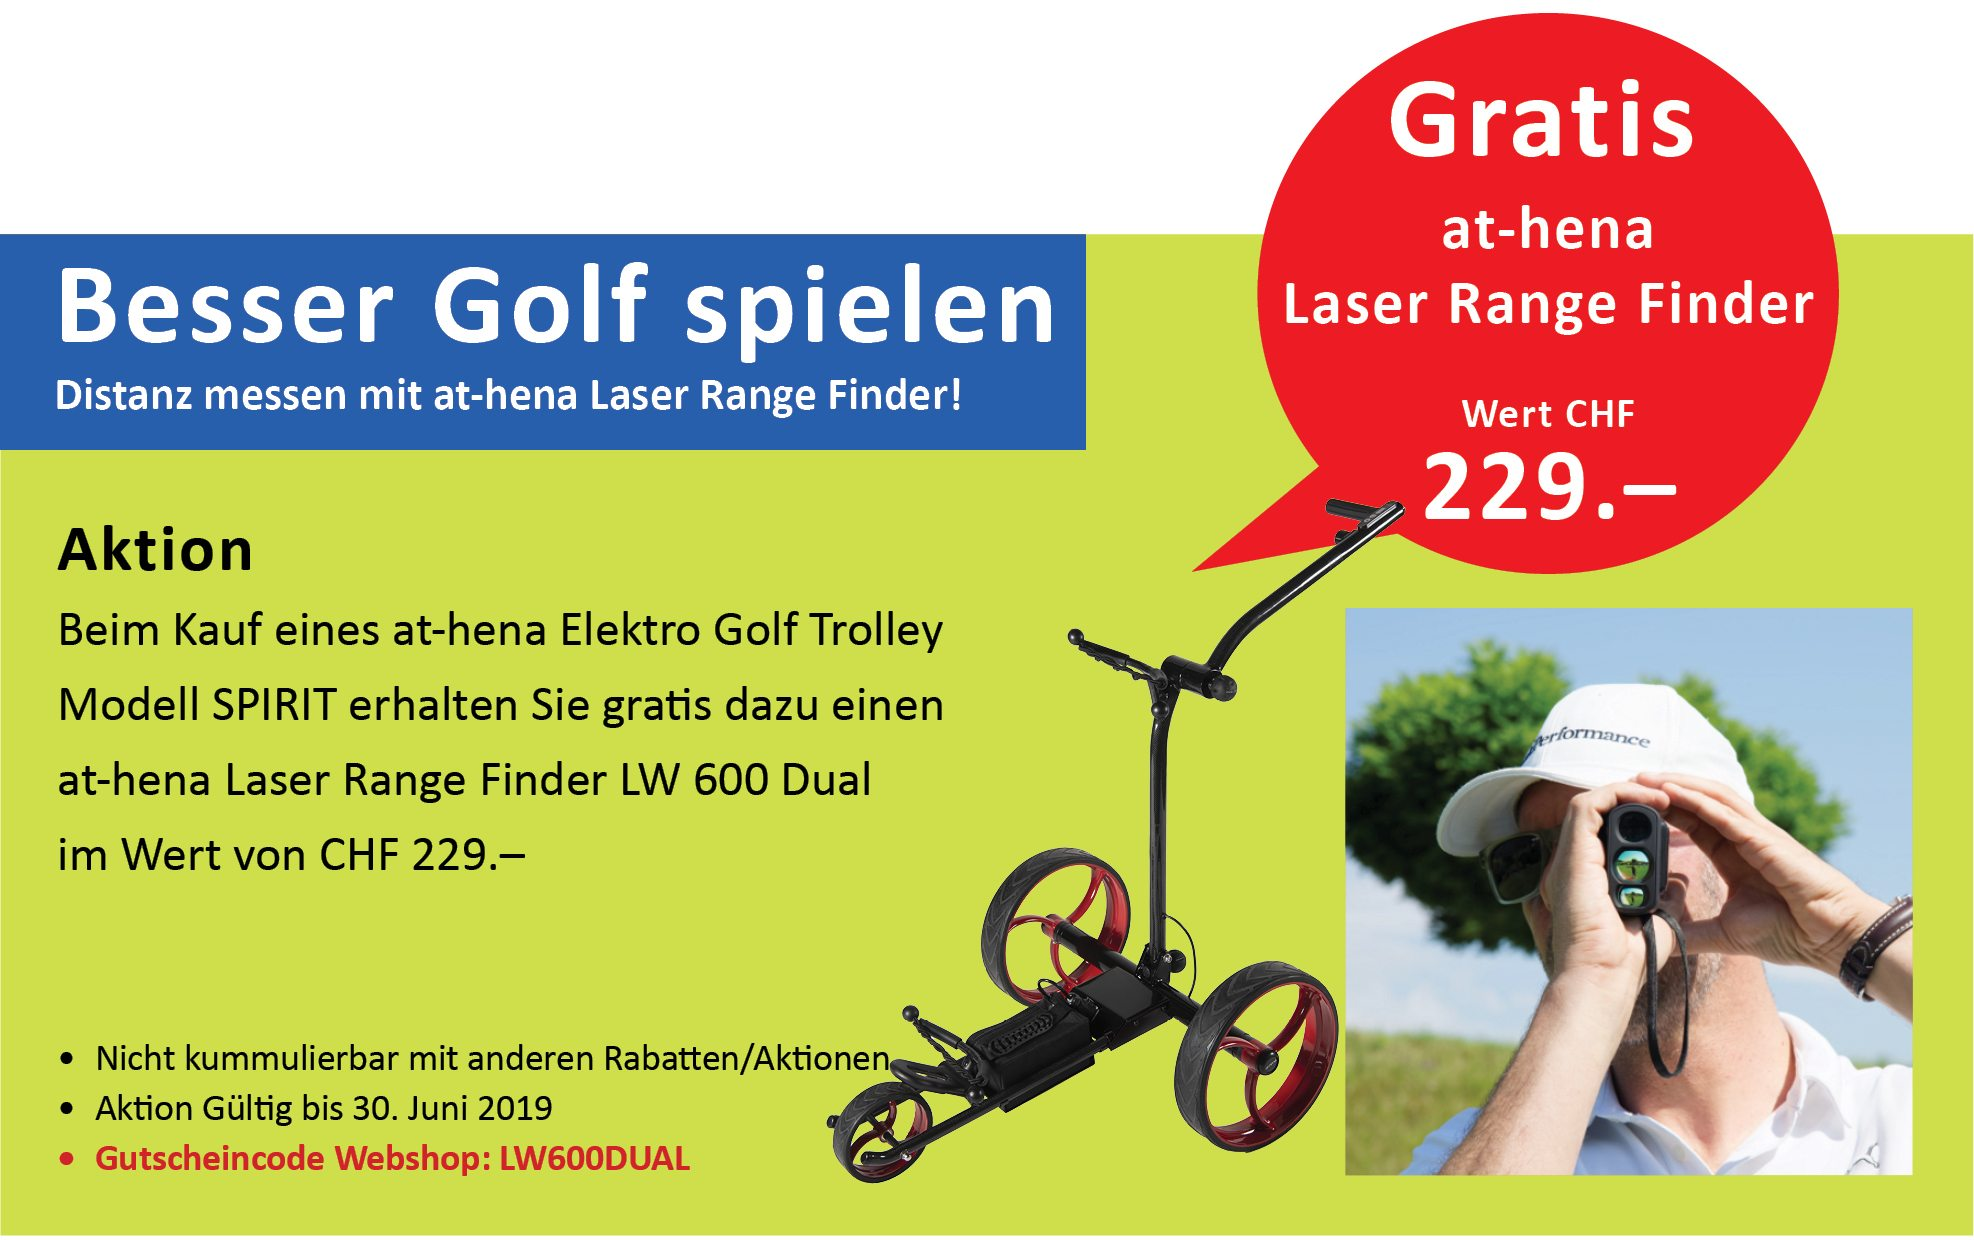 at-hena Eletro Golf Trolley Aktion Laser Range Finder